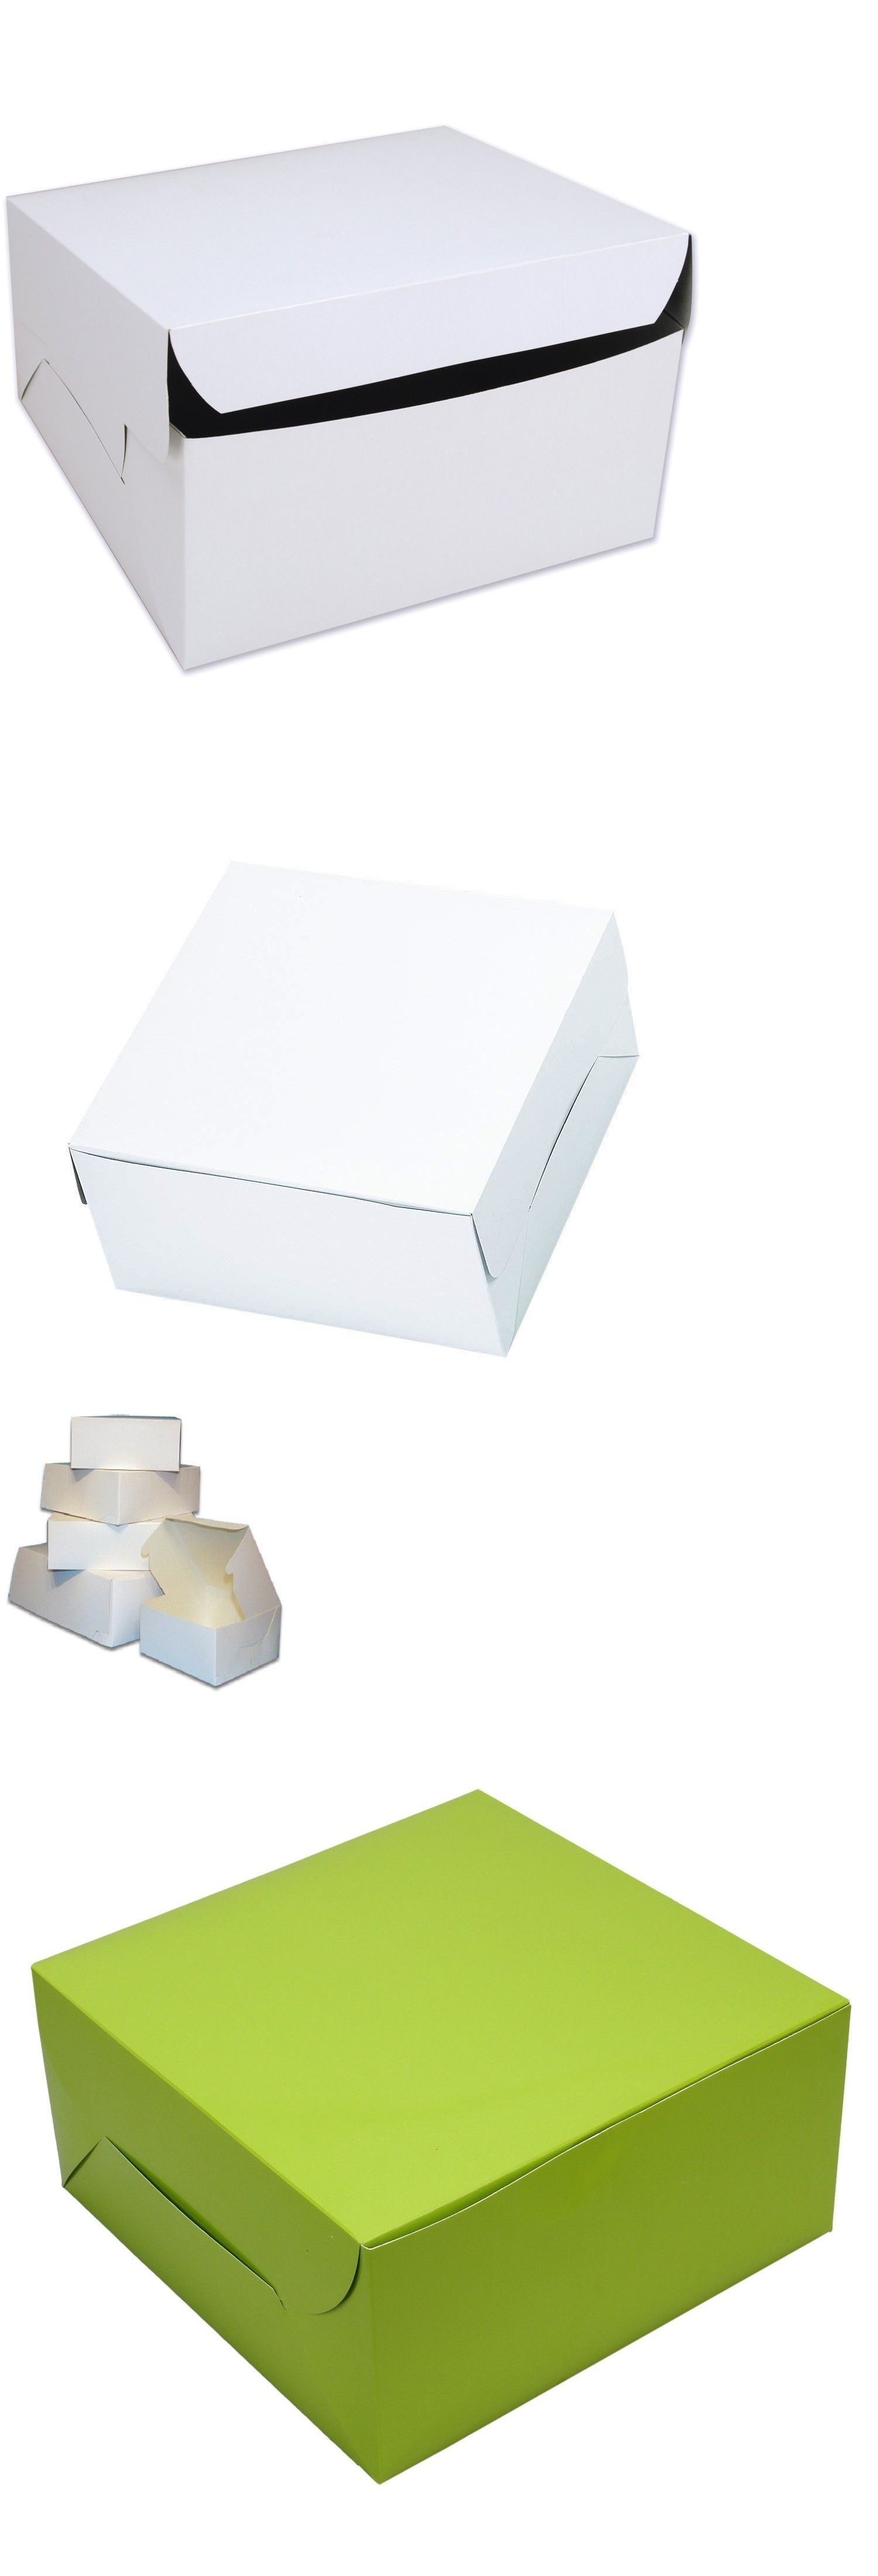 Pin On Cake Boxes And Bags 183355